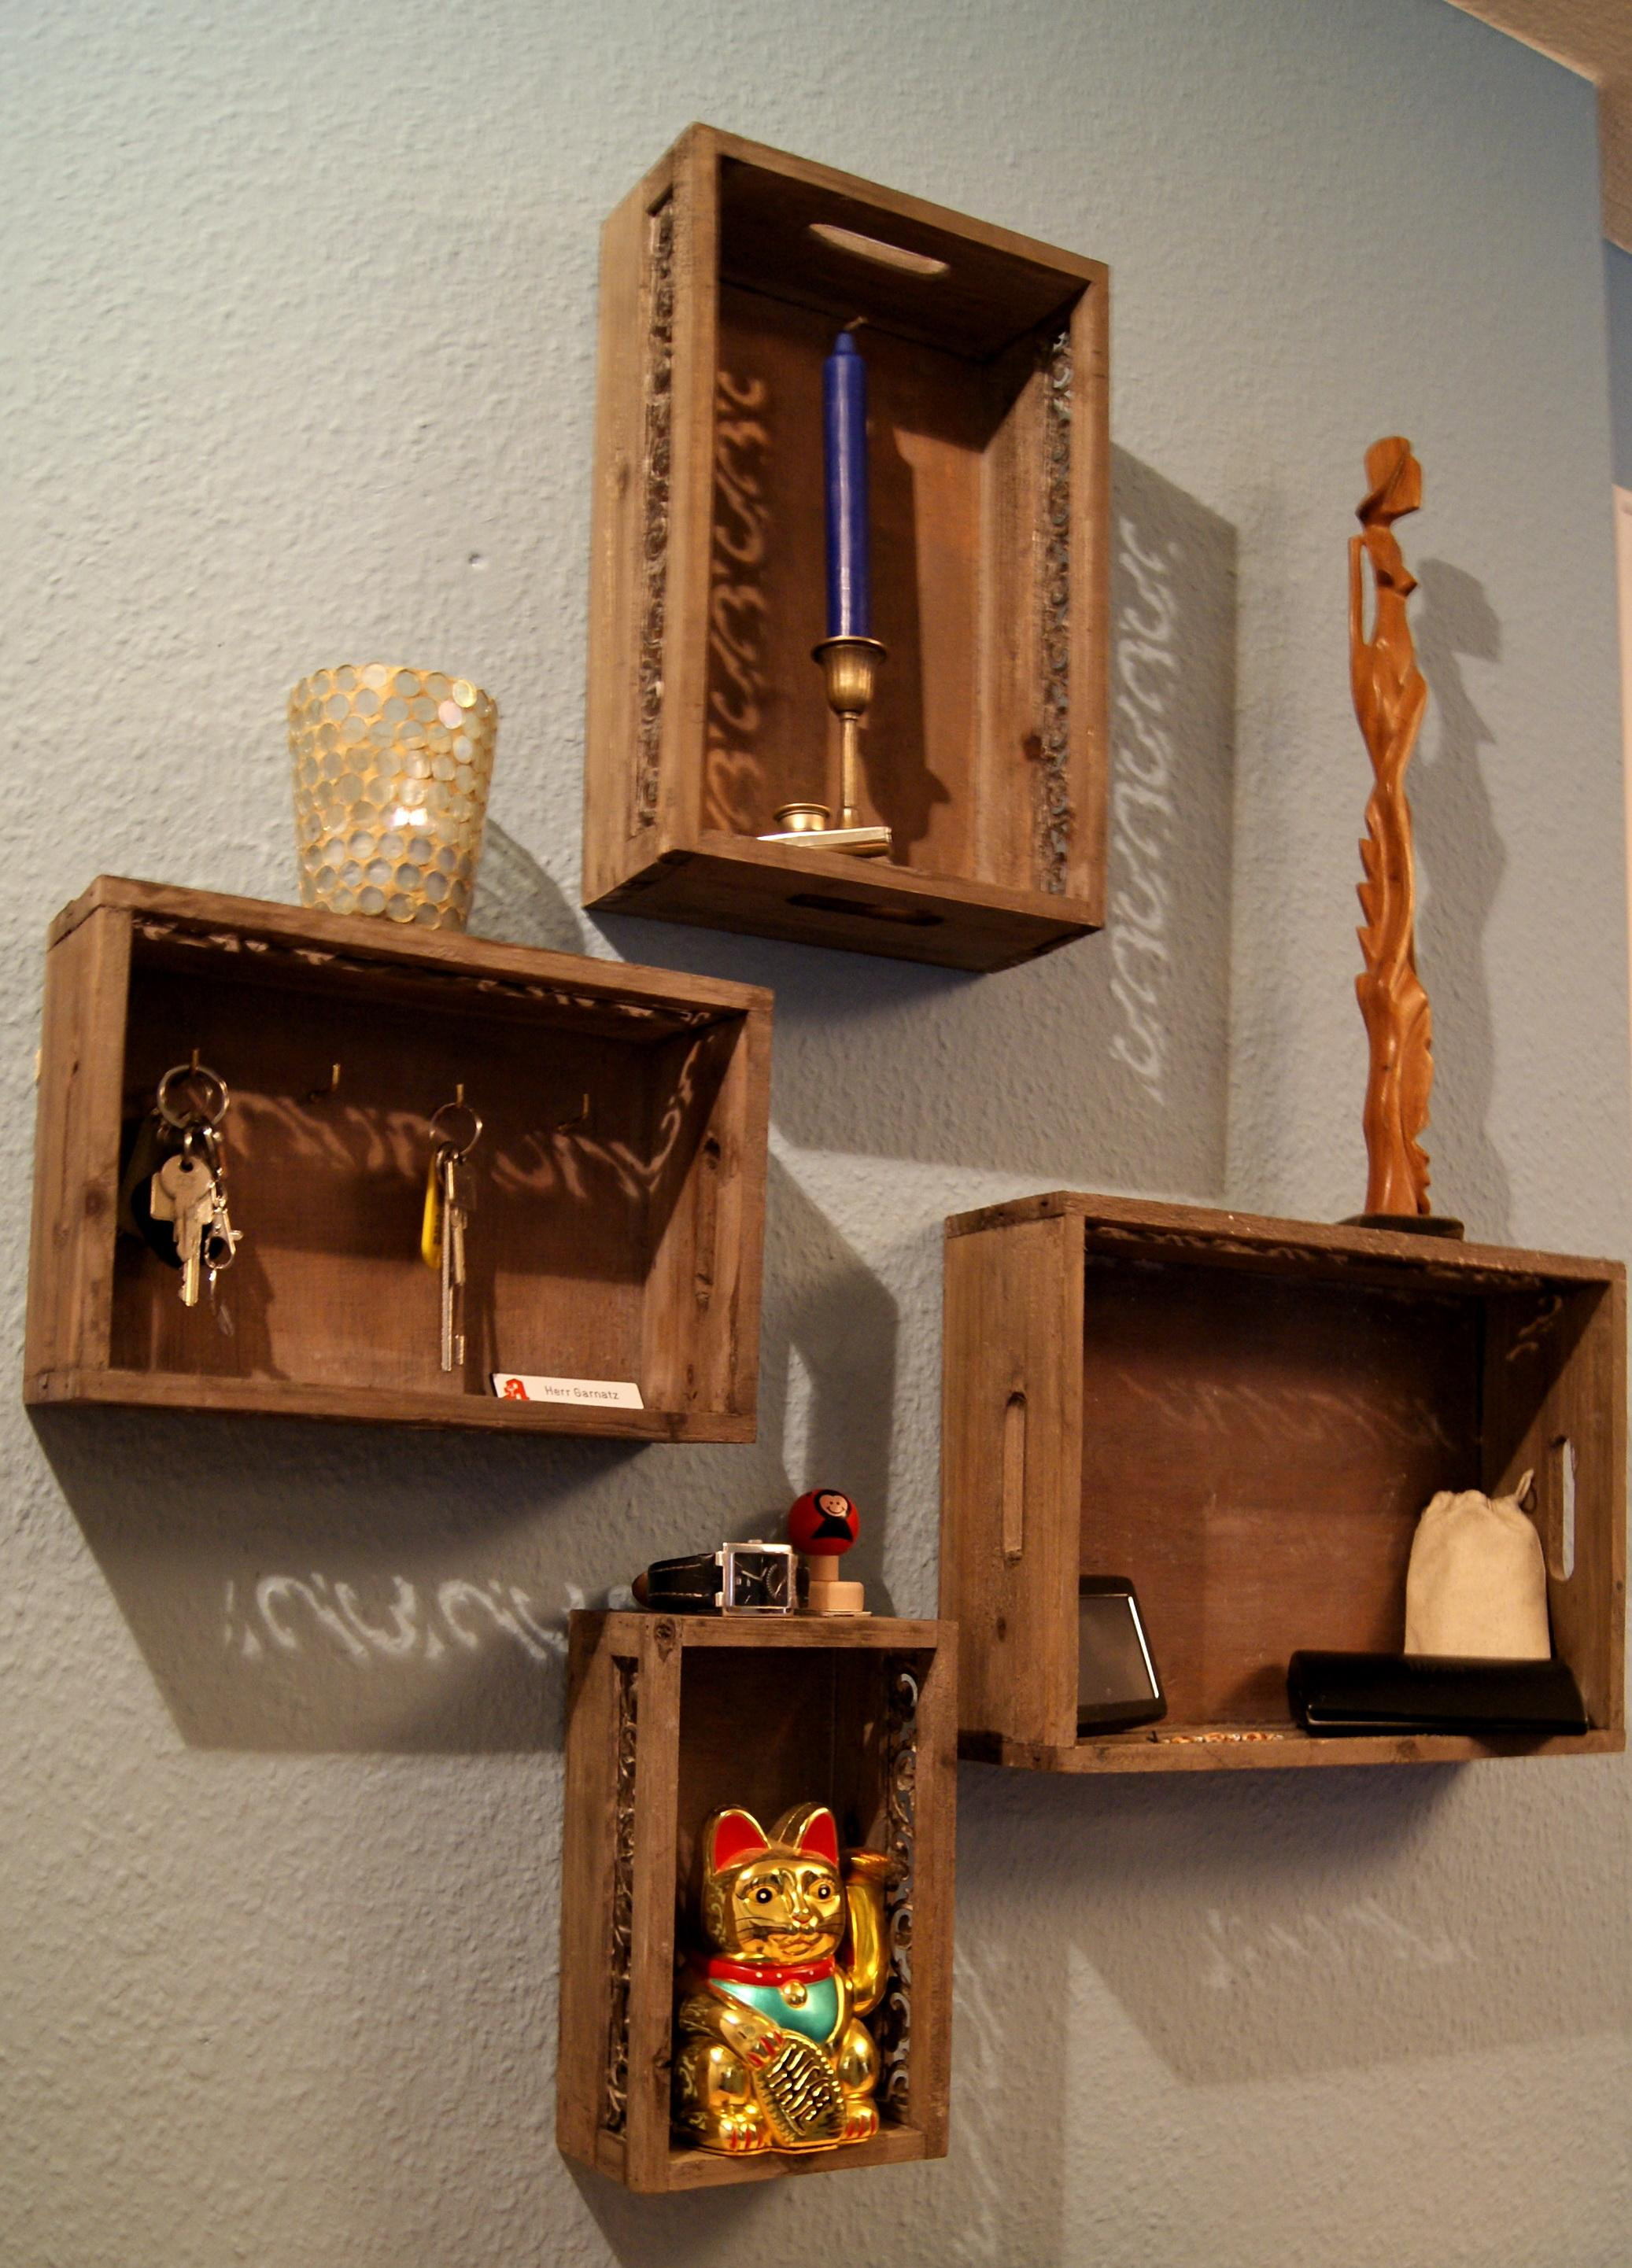 Holzkästen DiY Regale #regal #diy ©artenstein